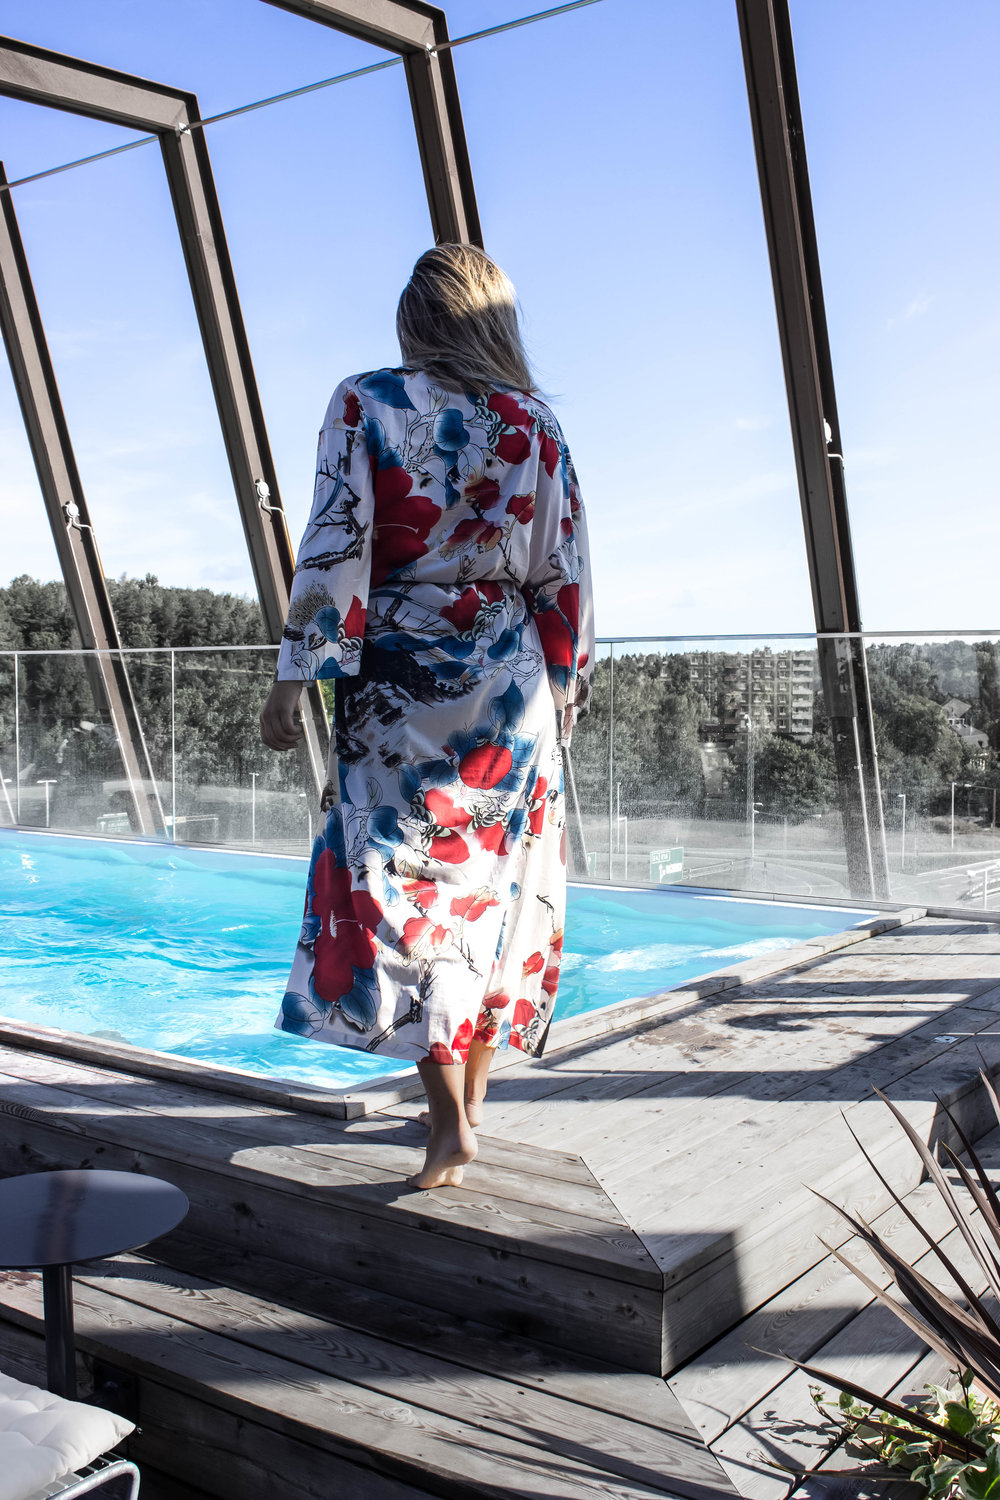 about that look, aboutthatlook, the winery hotel, meditation, yoga, lifestyle, stressfree